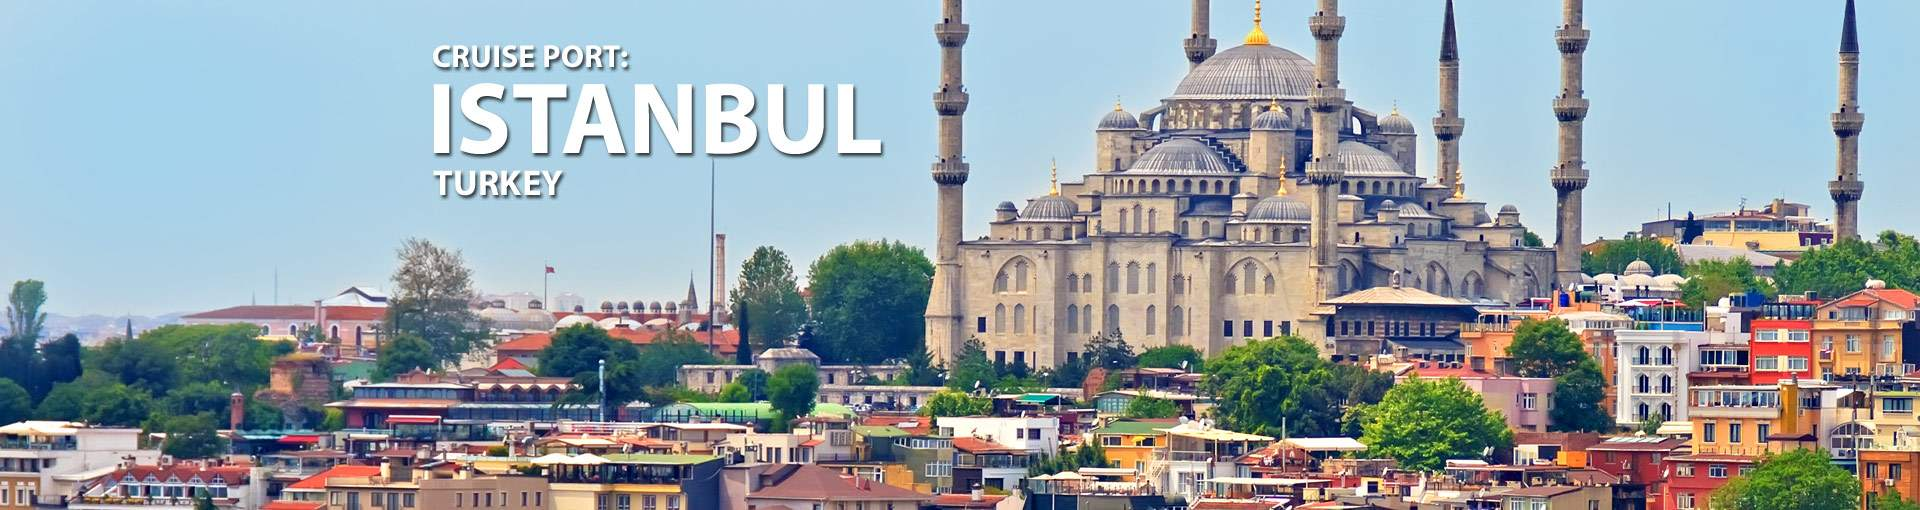 Istanbul Turkey Cruise Port 2018 And 2019 Cruises From